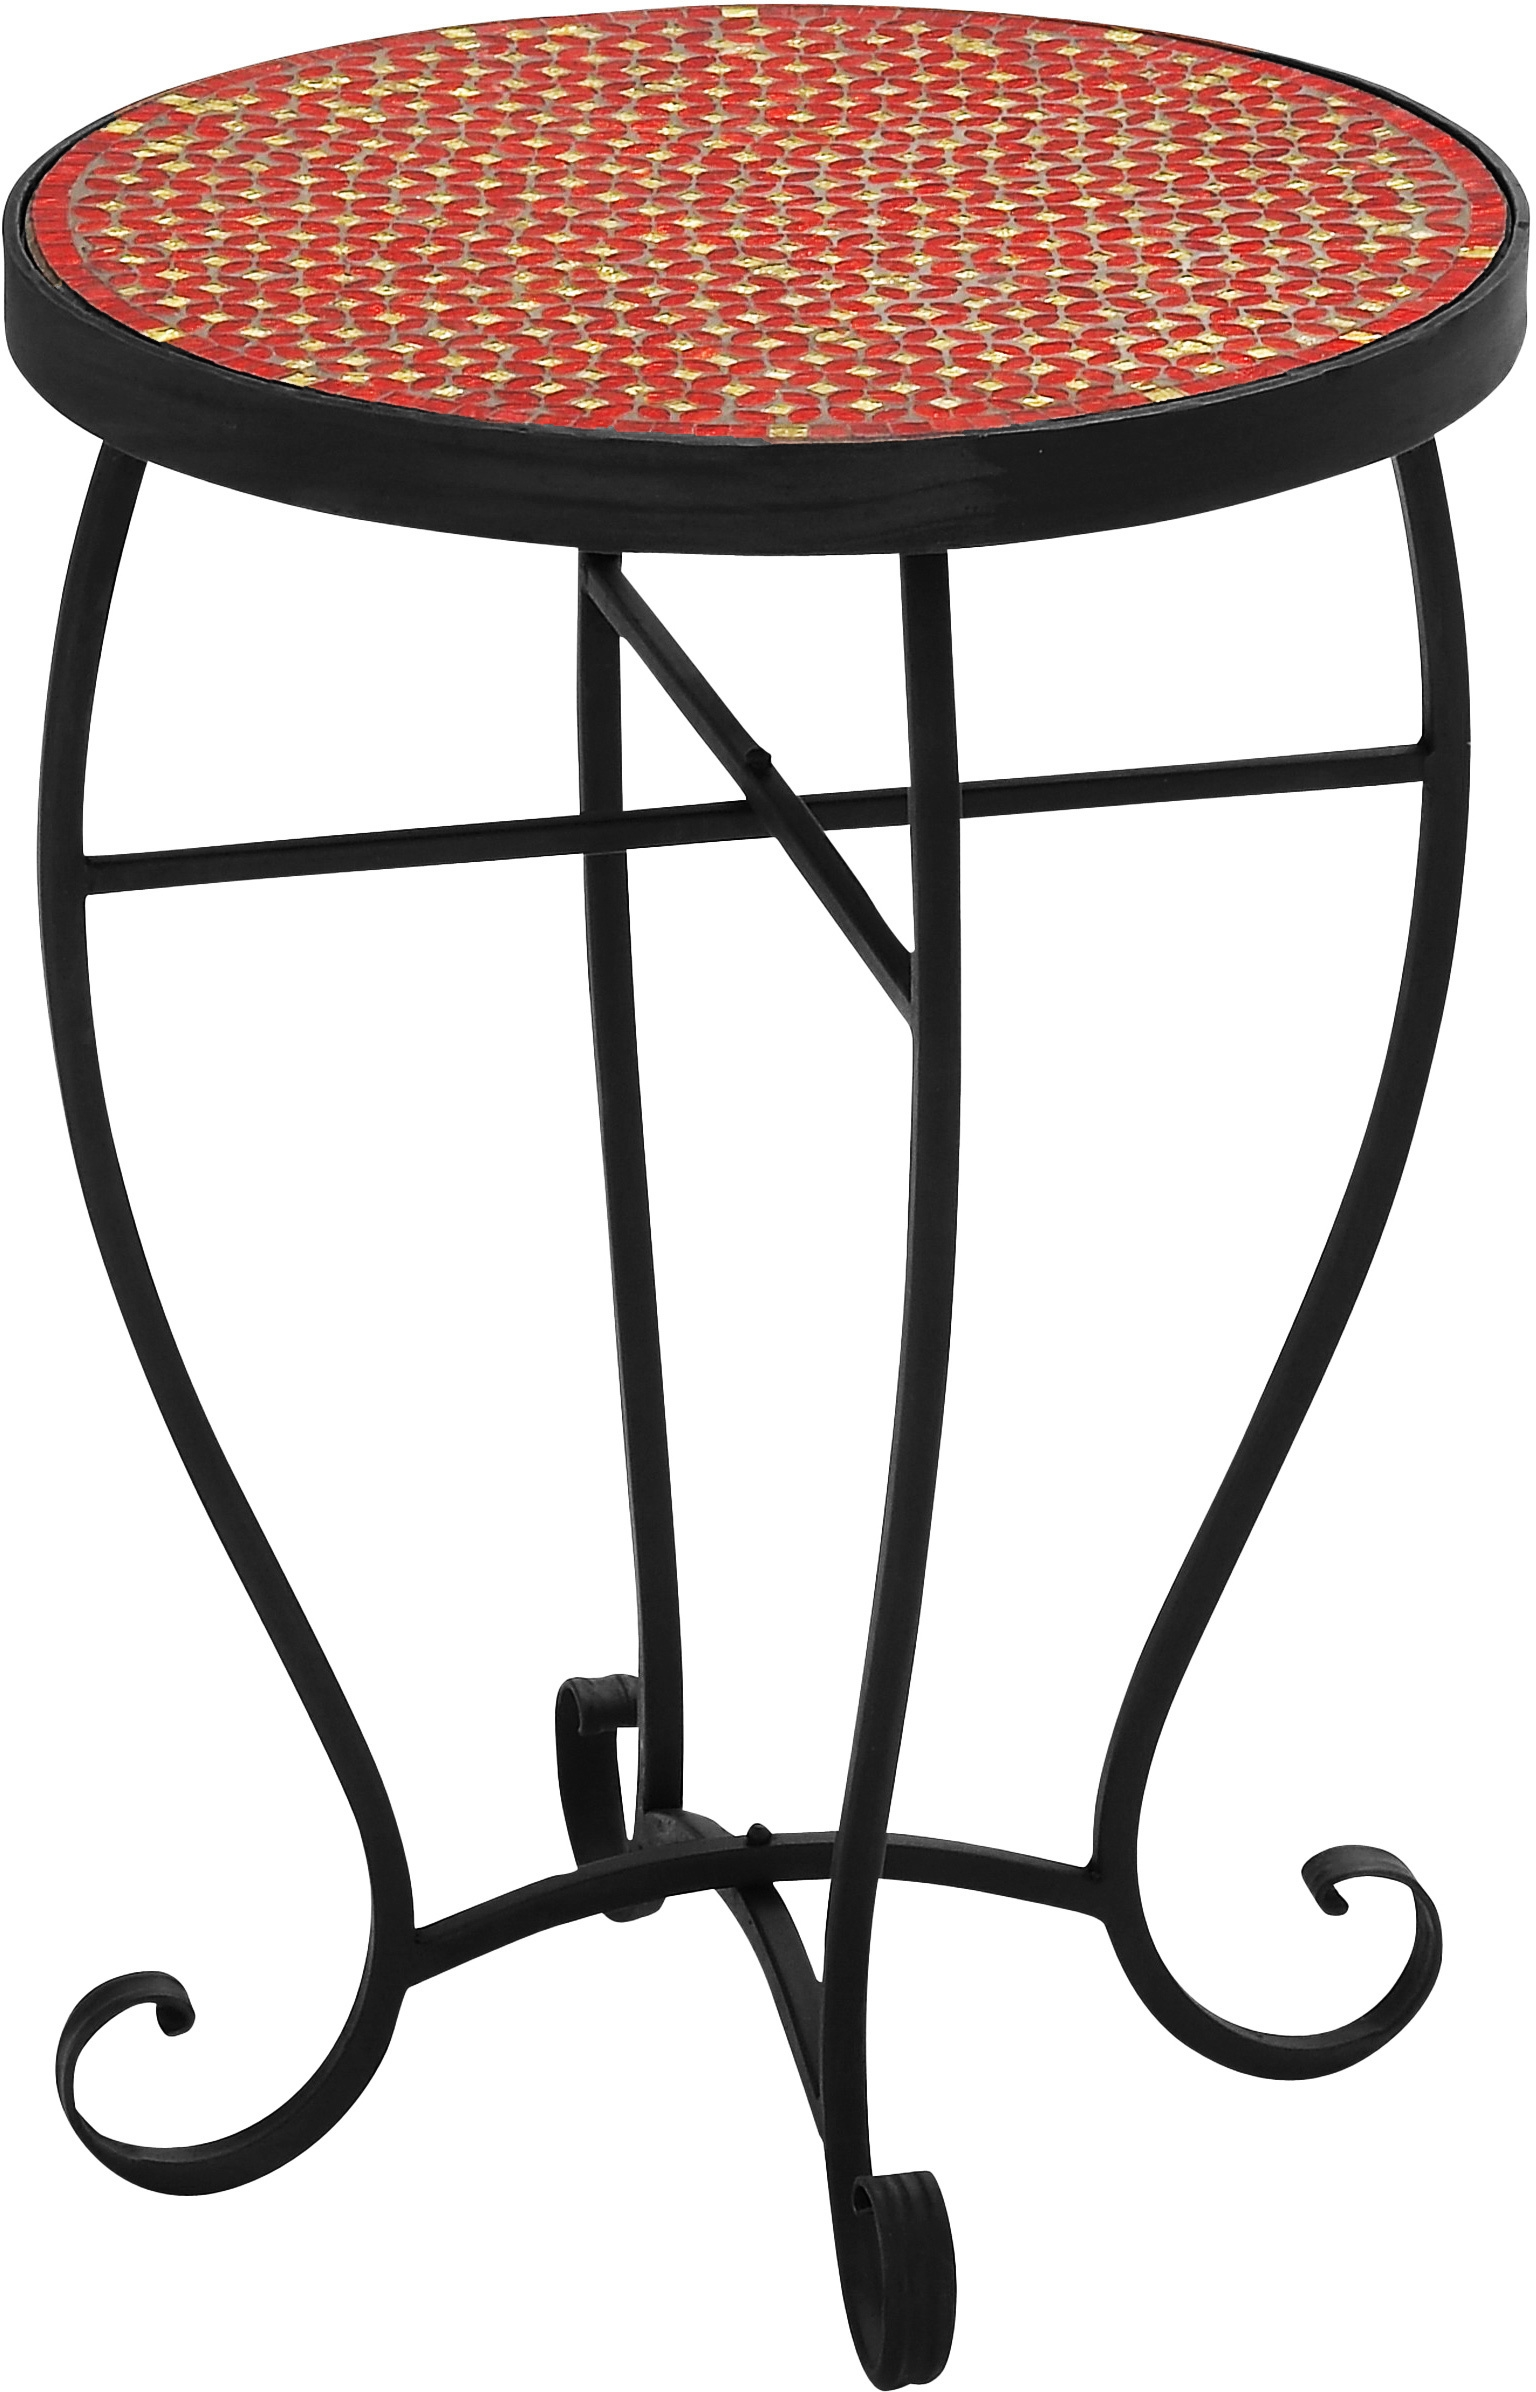 outdoor accent table mosaic red round side indoor end chrome patio grey coffee square trestle silver wood cover small metal black and glass tables ikea leaf white corner battery